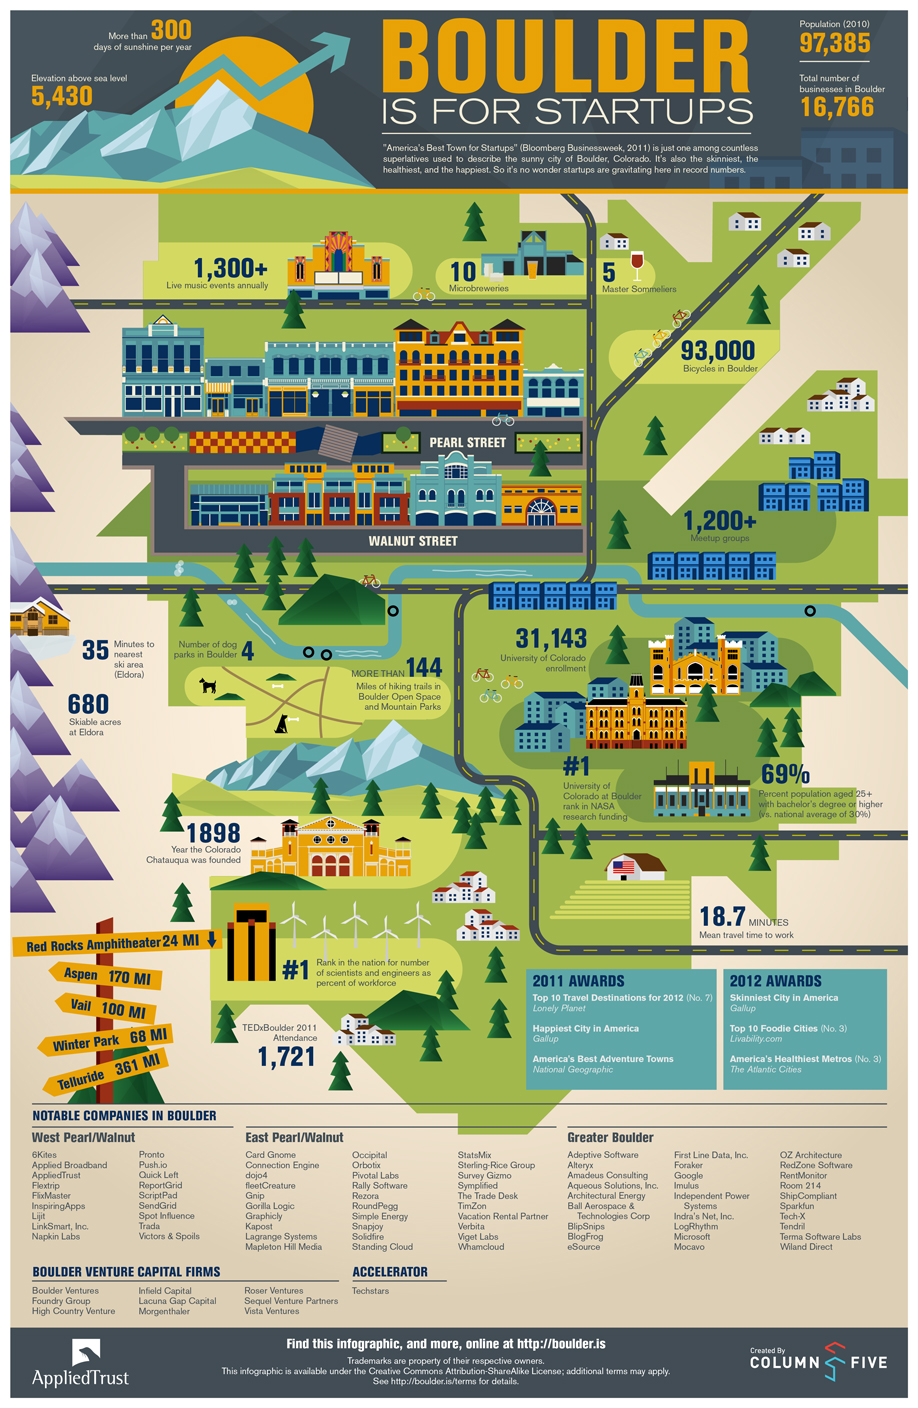 Infographic: Boulder is for Startups